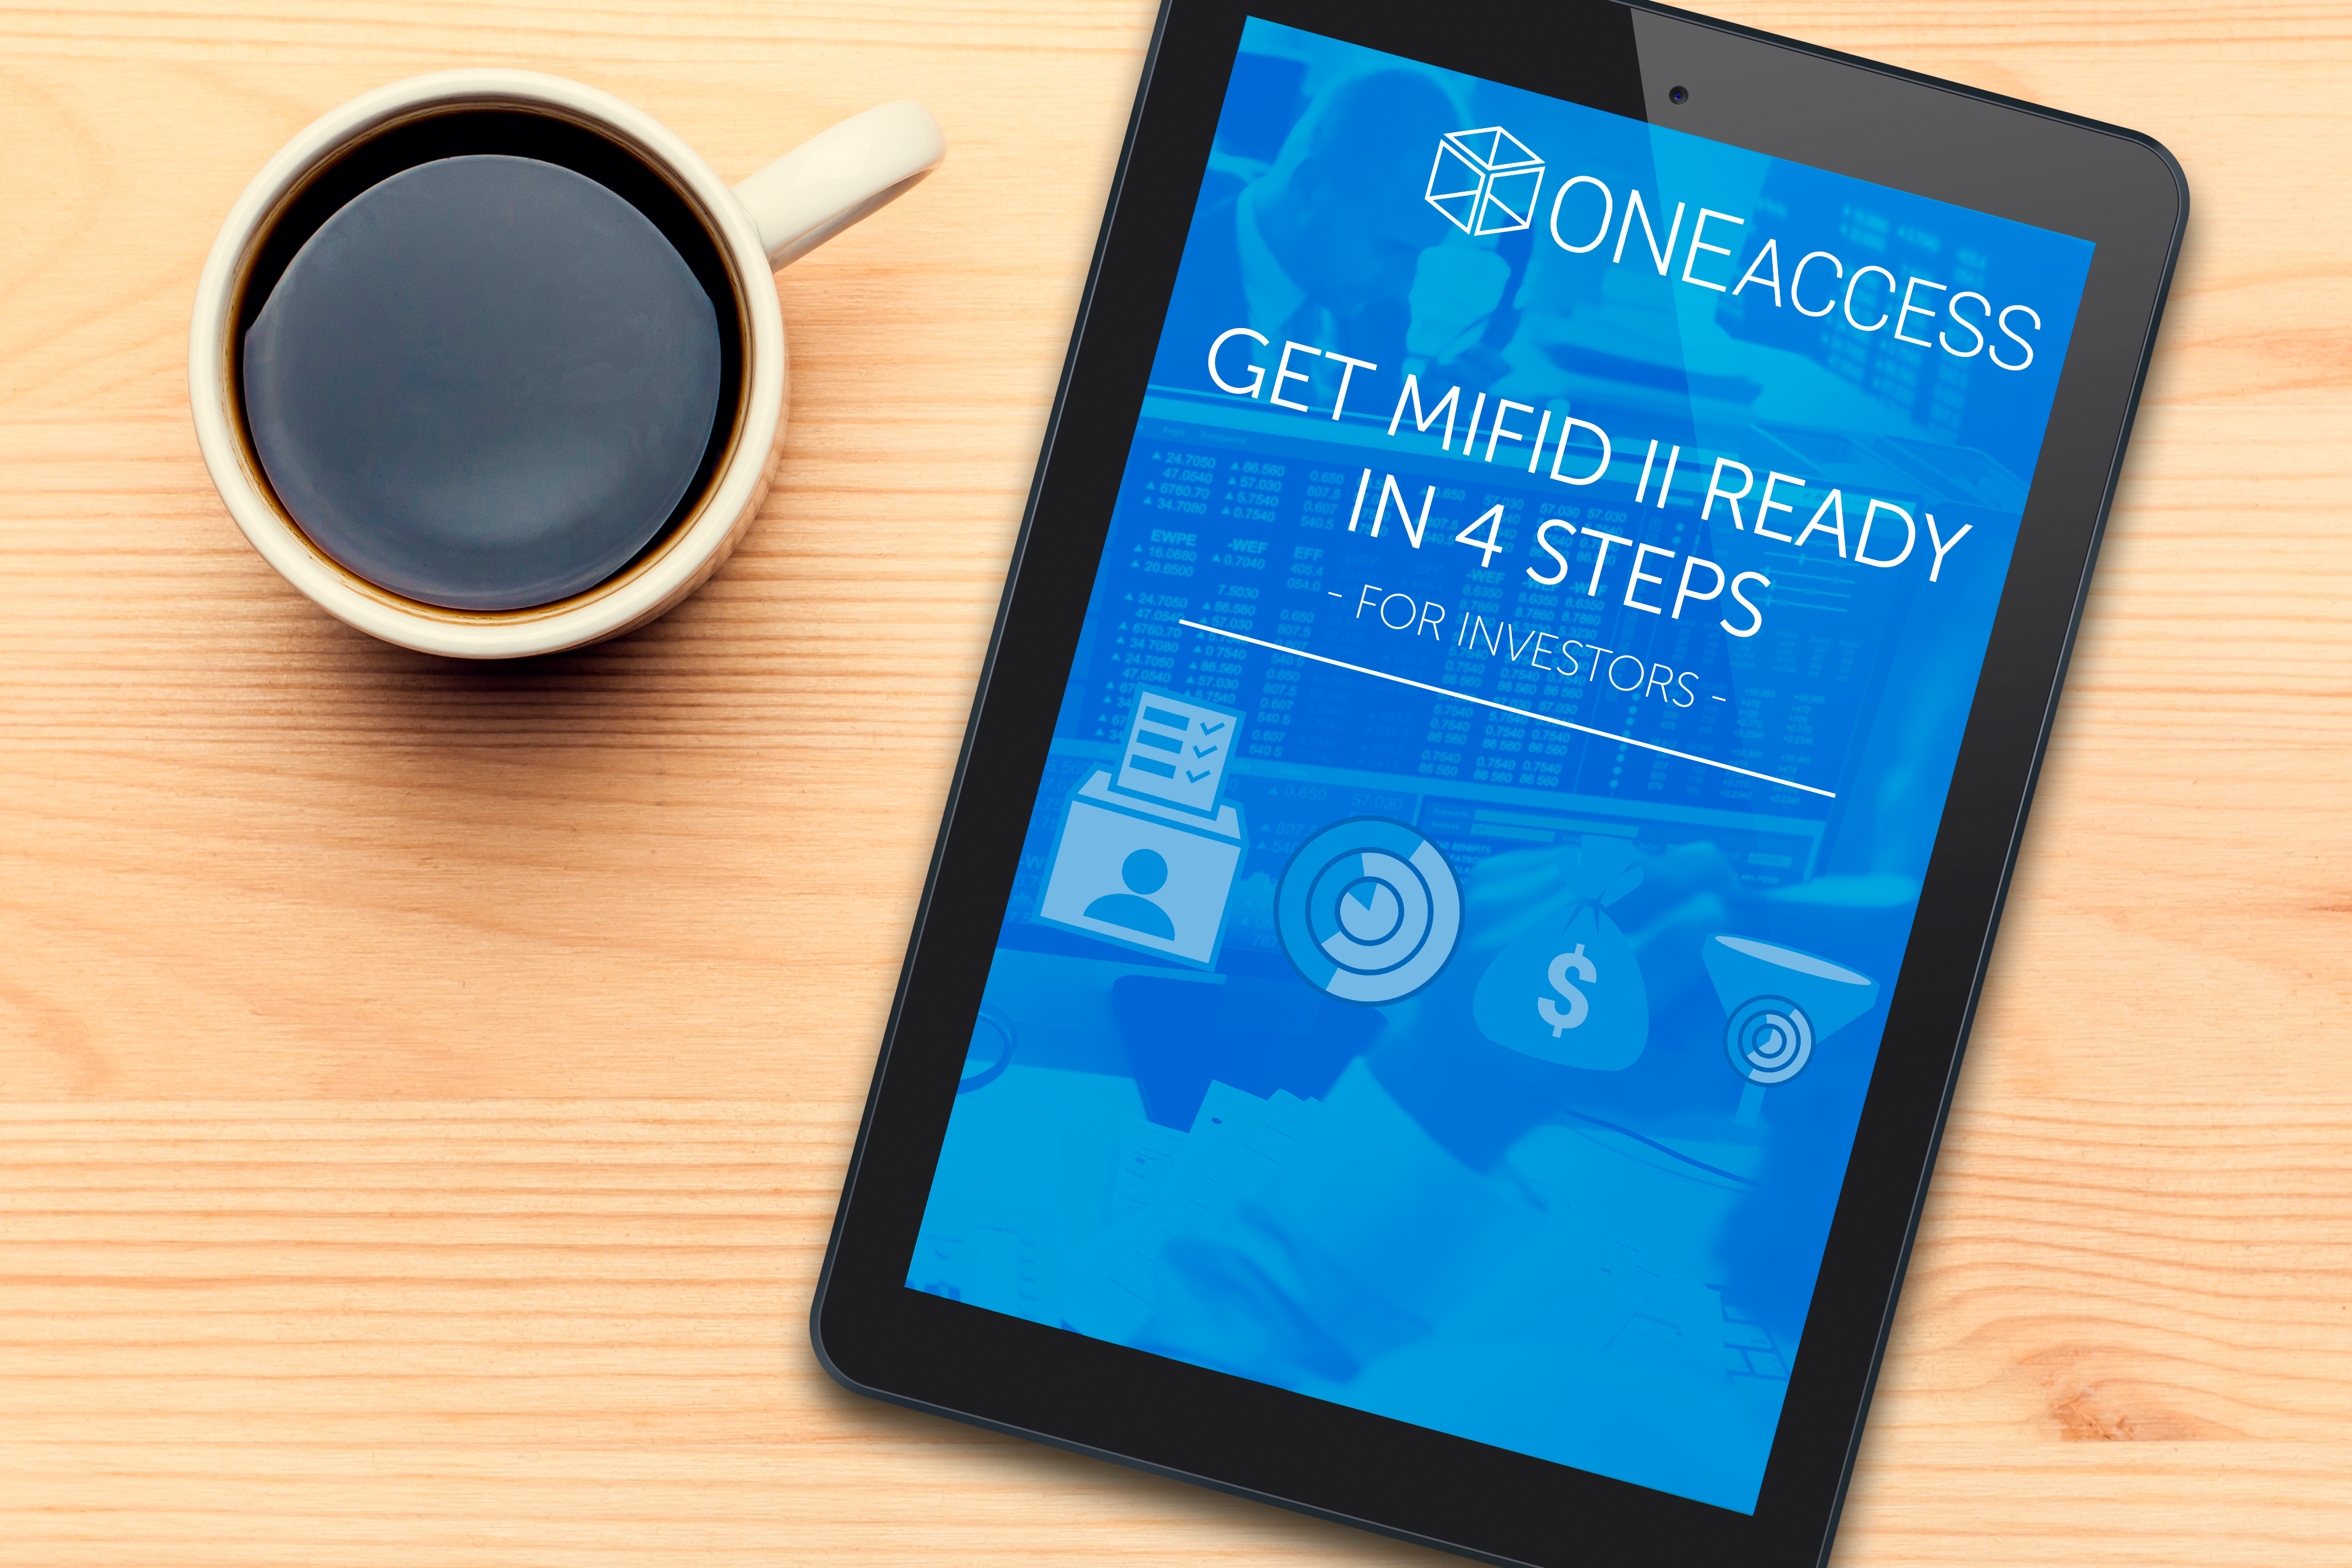 ONEaccess MiFID II Checklist - Get It Now